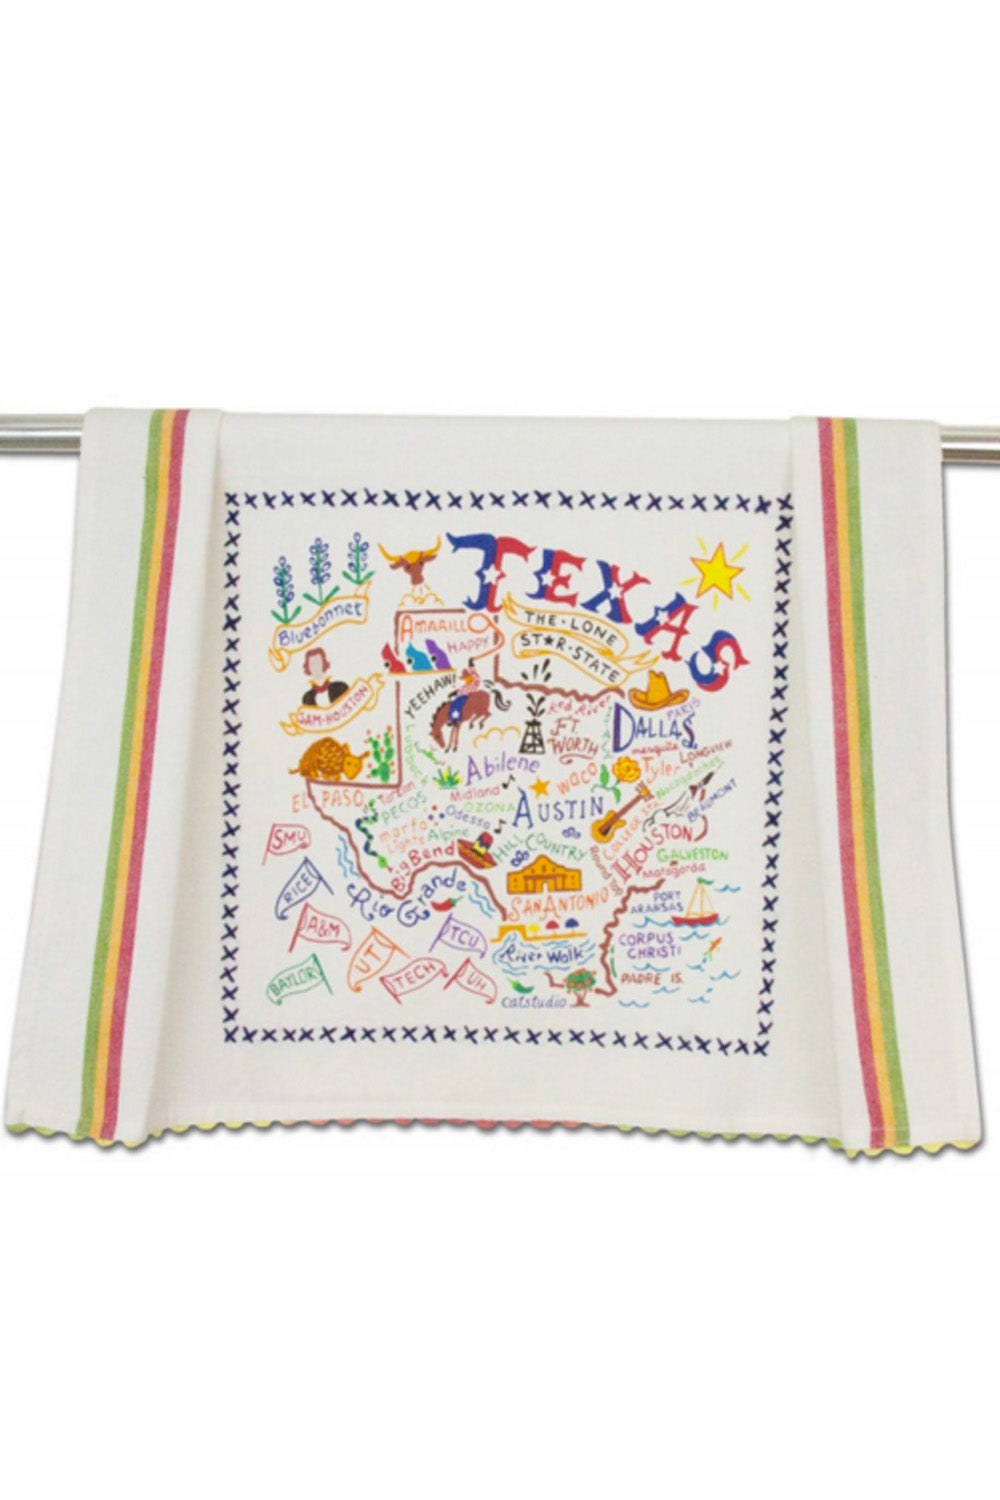 Emrboidered Dish Towel - Texas